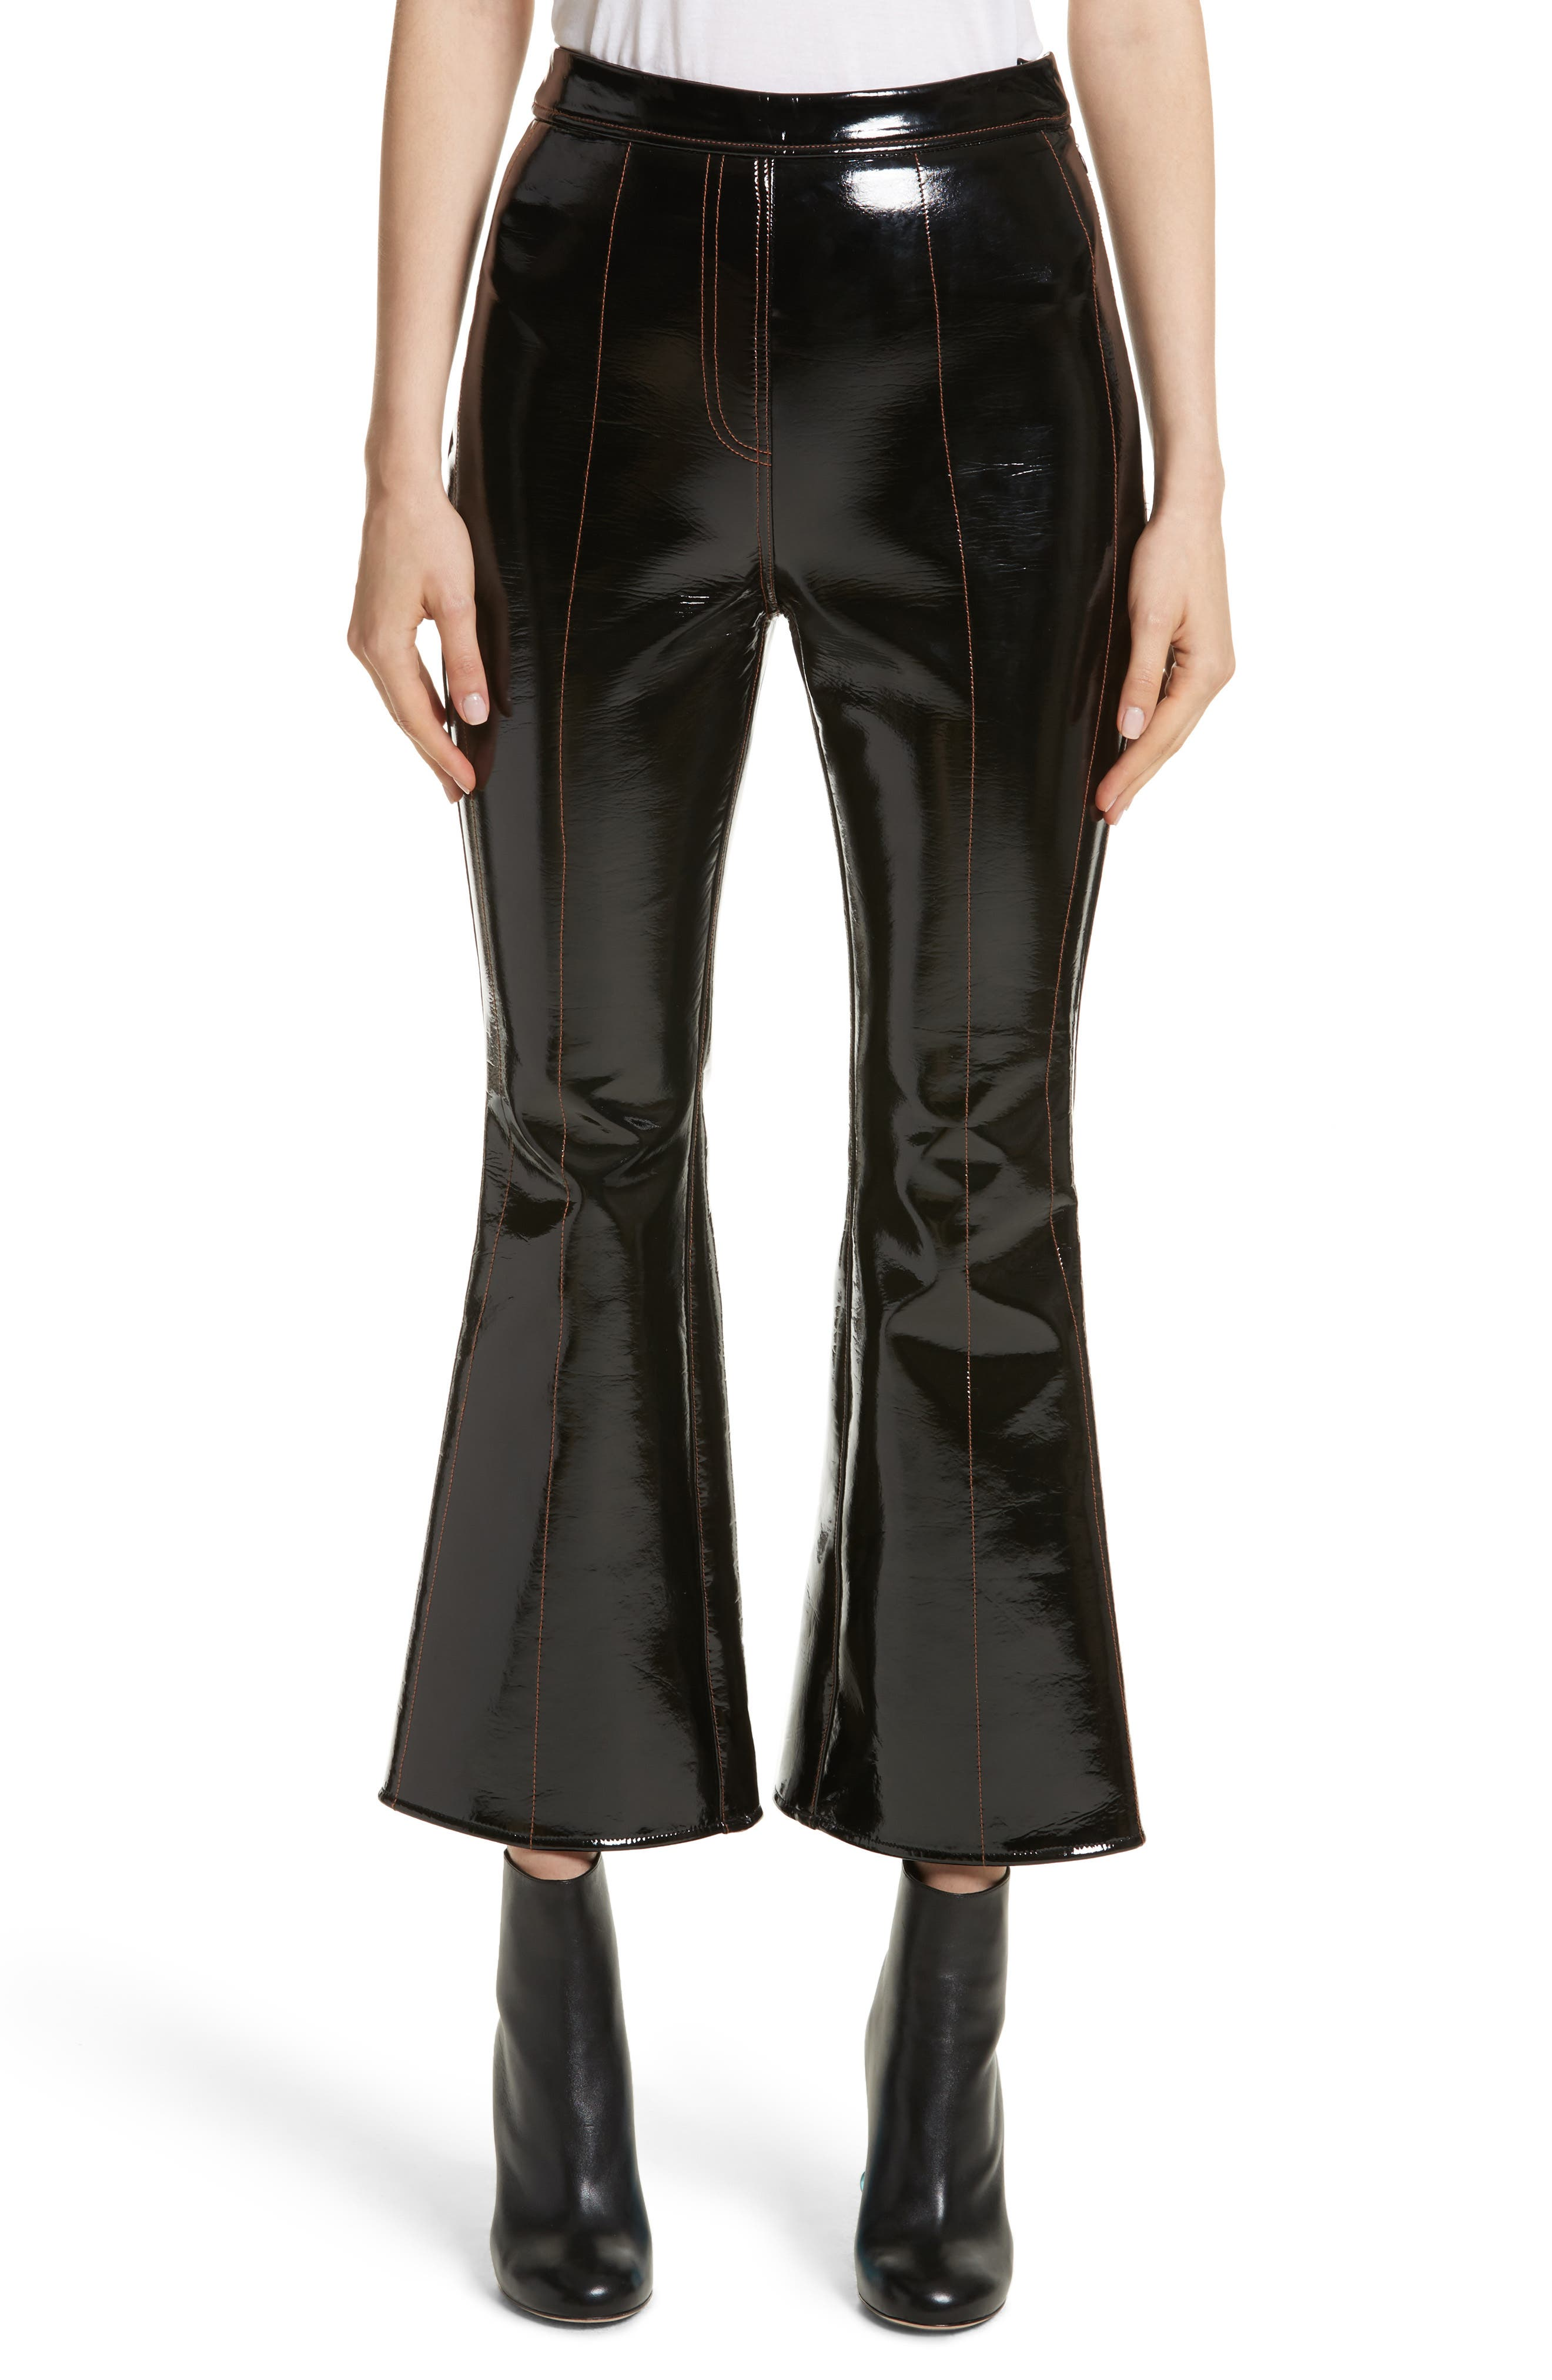 Outlaw Topstitched Crop Flare PVC Pants,                             Main thumbnail 1, color,                             Black